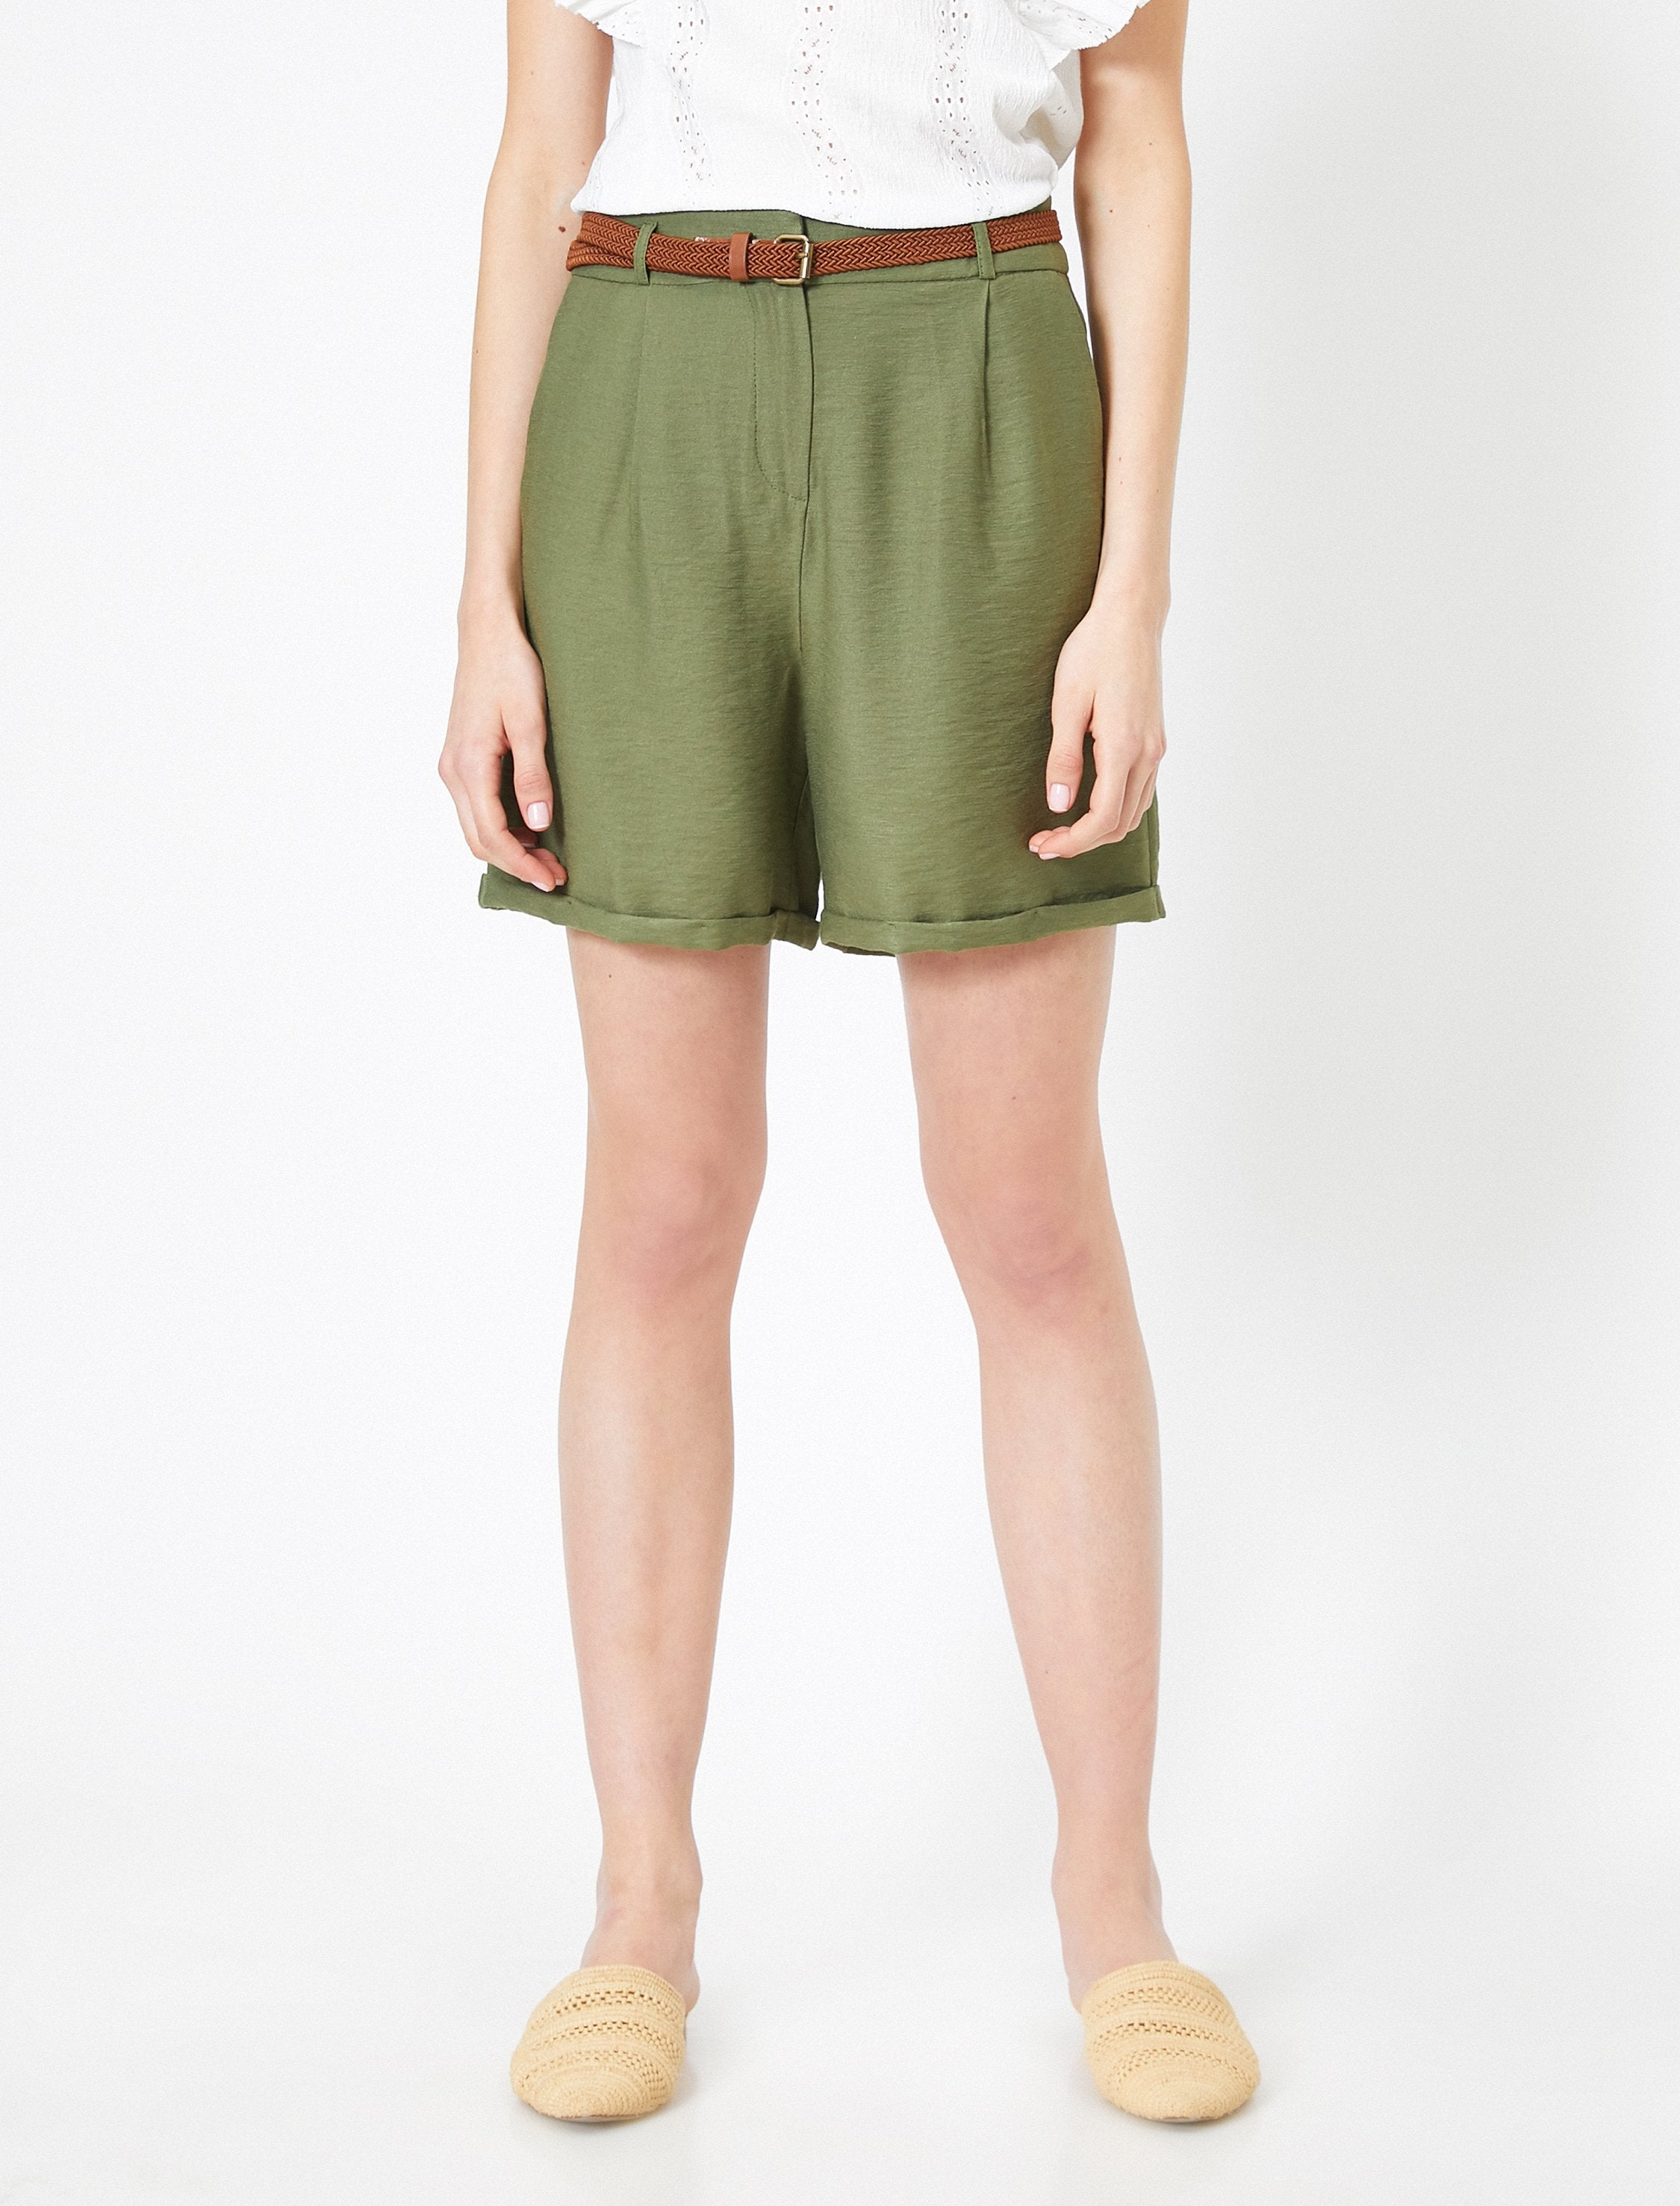 Natural Look Belted Shorts in Dark Olive